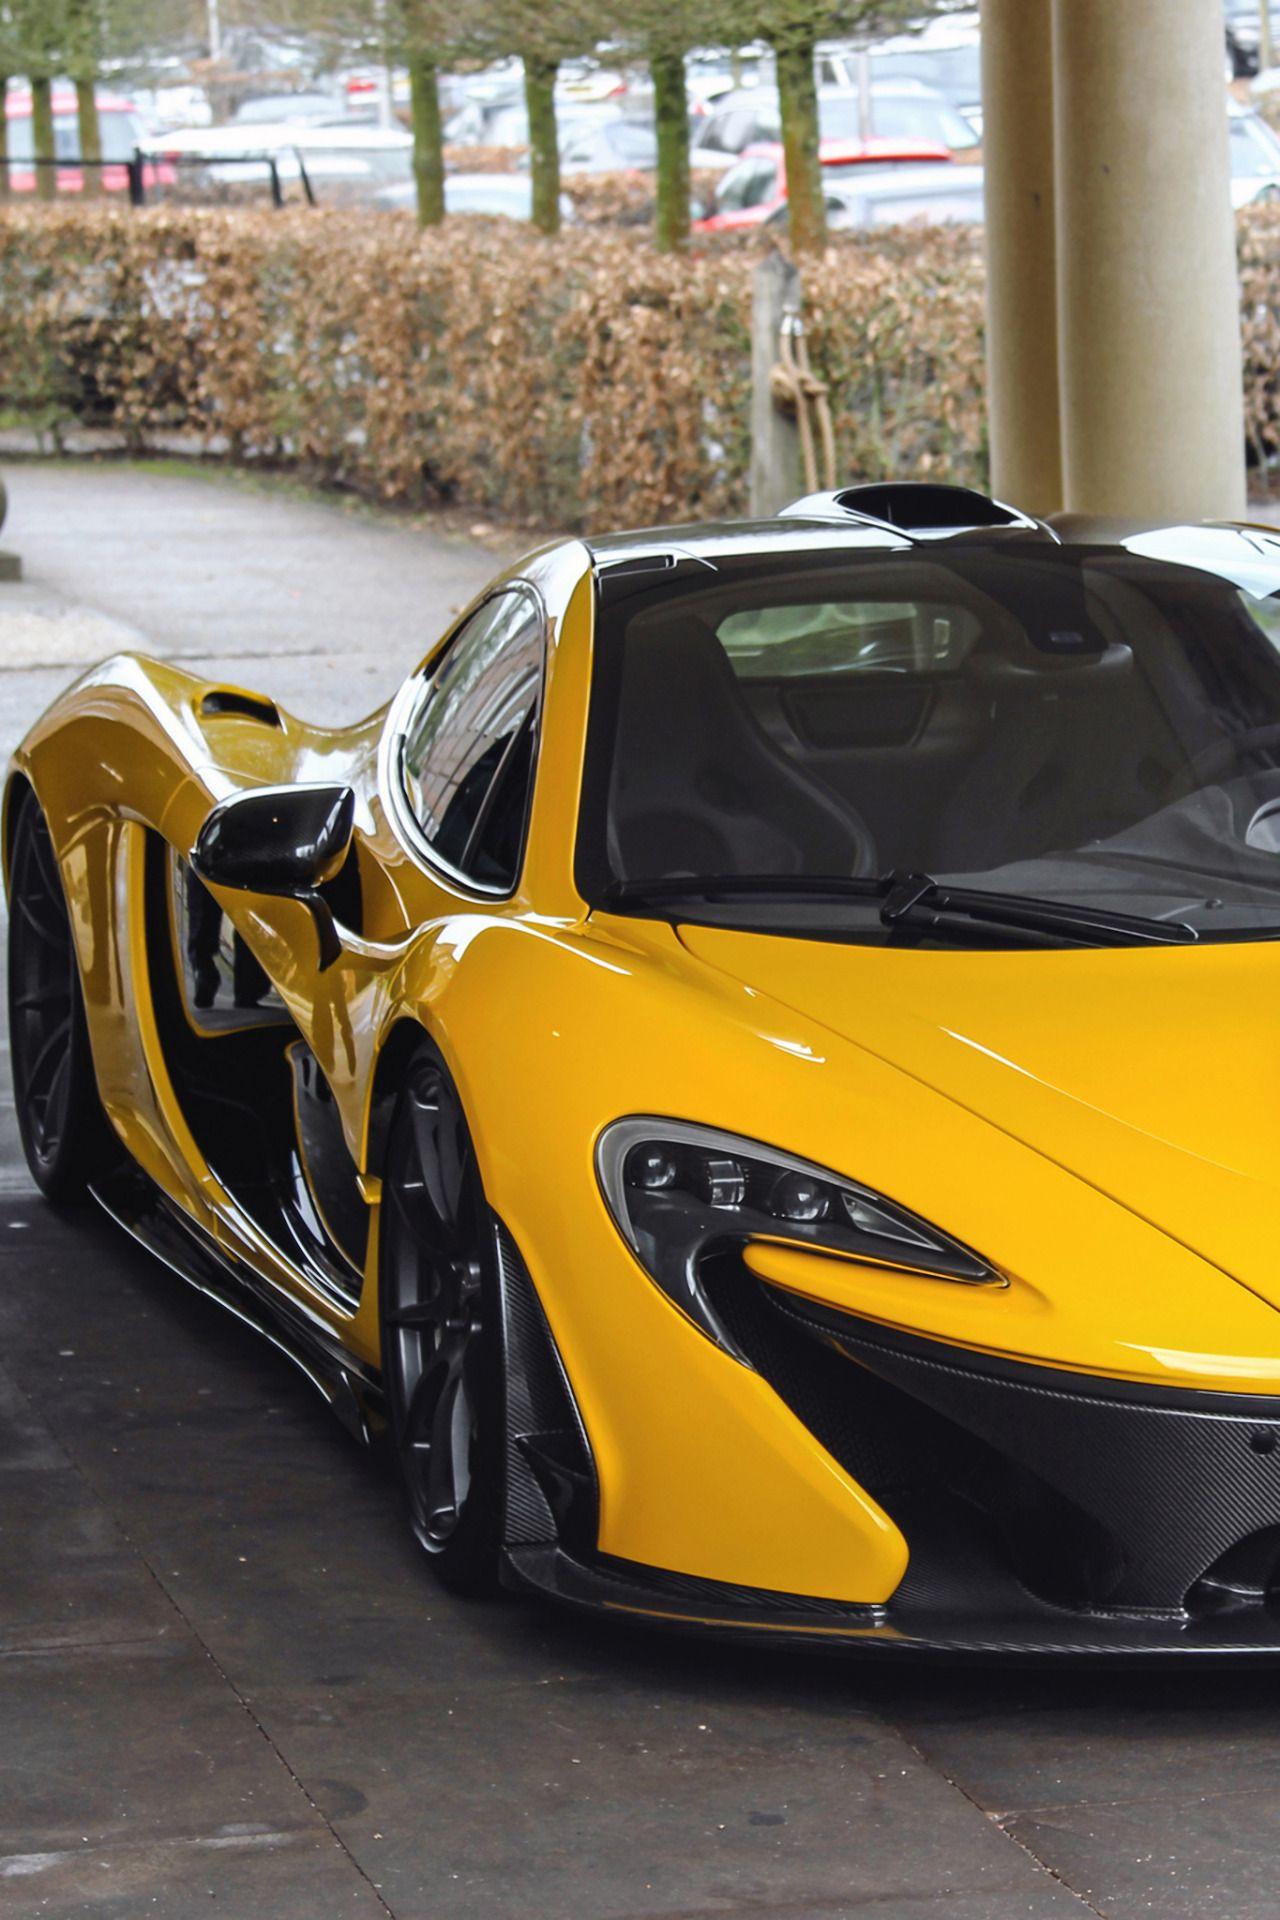 Supercars Photography Supercars Photography Sp Mclaren P1 Via Super Cars Mclaren P1 Luxury Cars